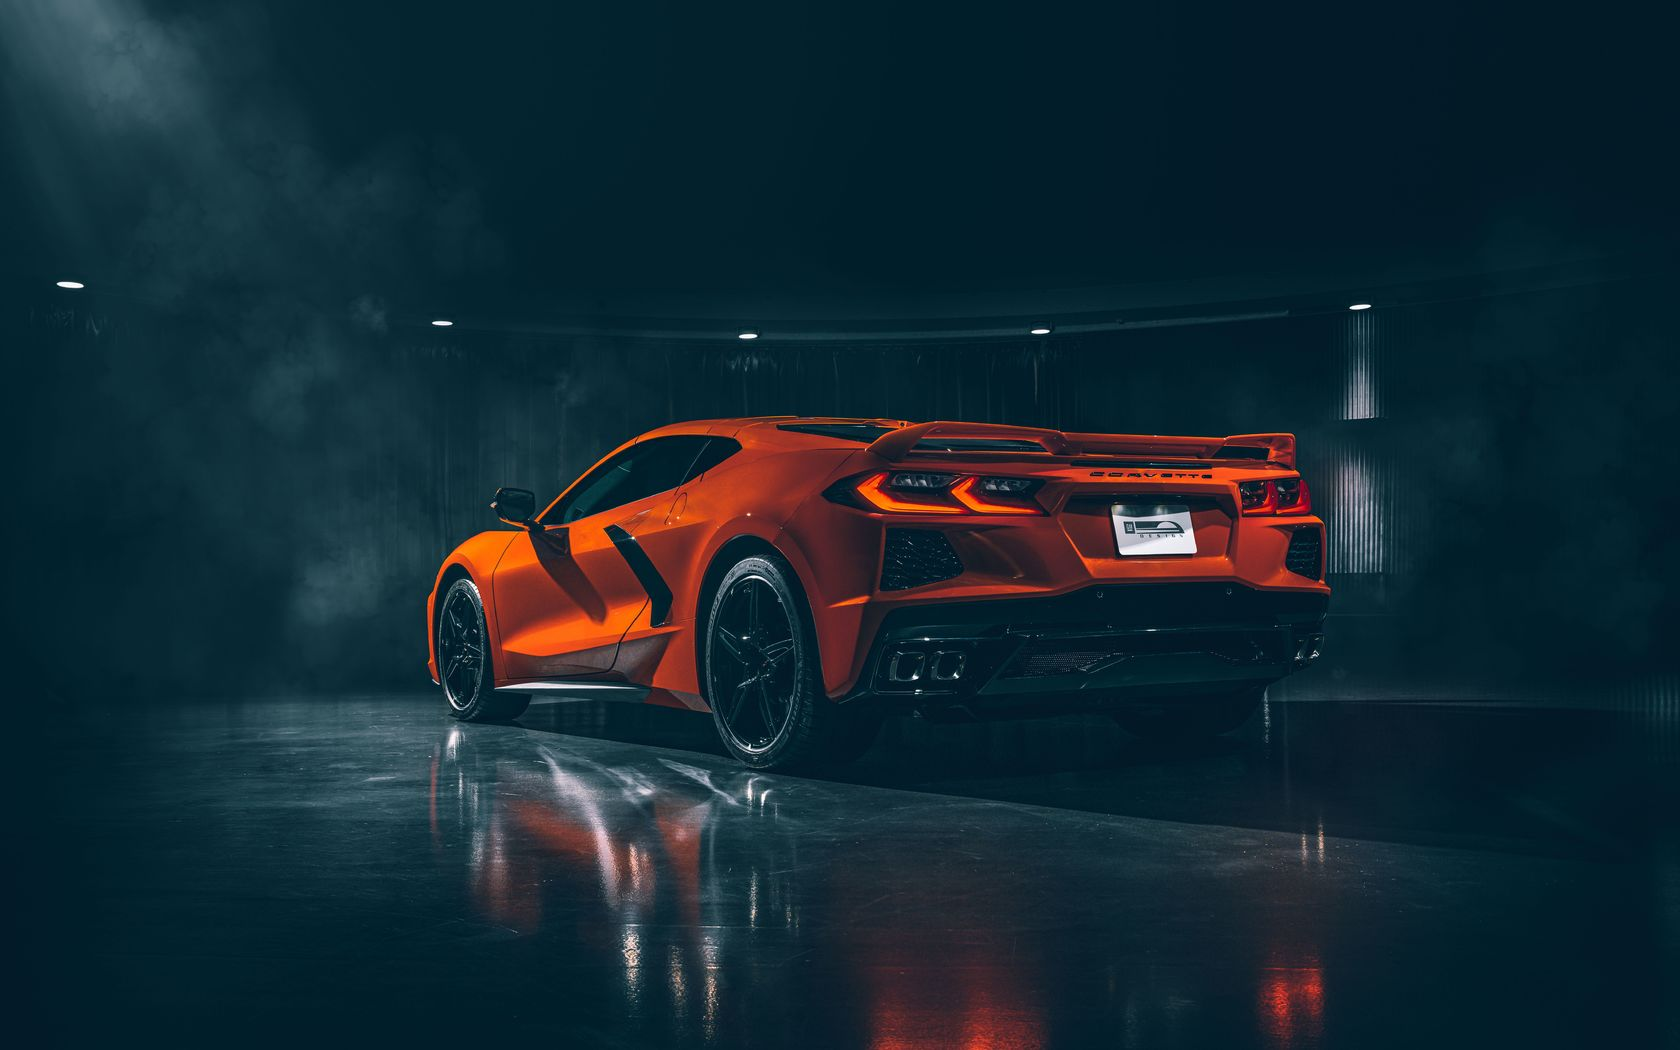 2020 Corvette Production Could Be Stopped - TirePost